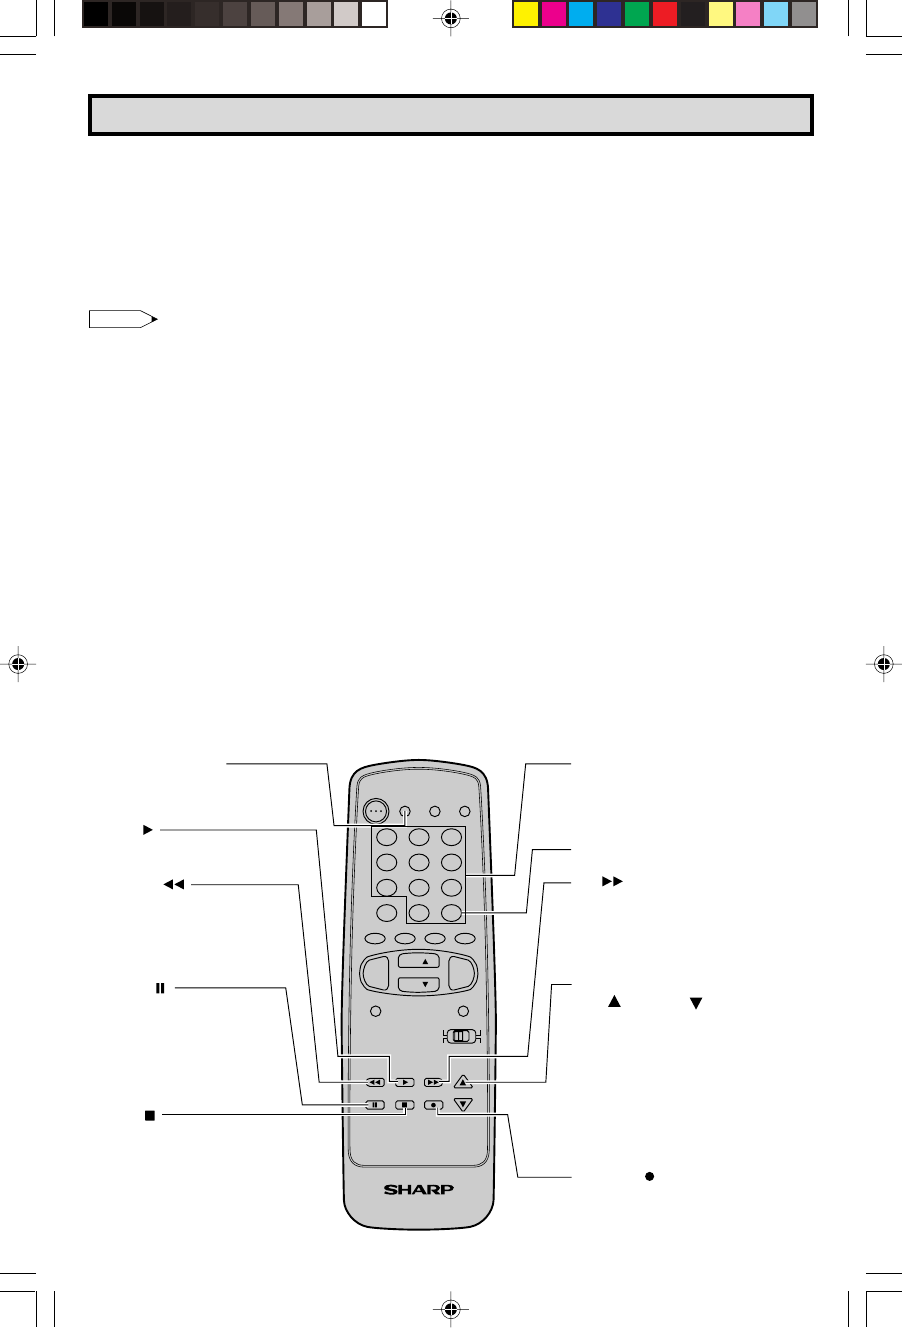 Page 41 of Sharp TV VCR Combo 32C530 User Guide